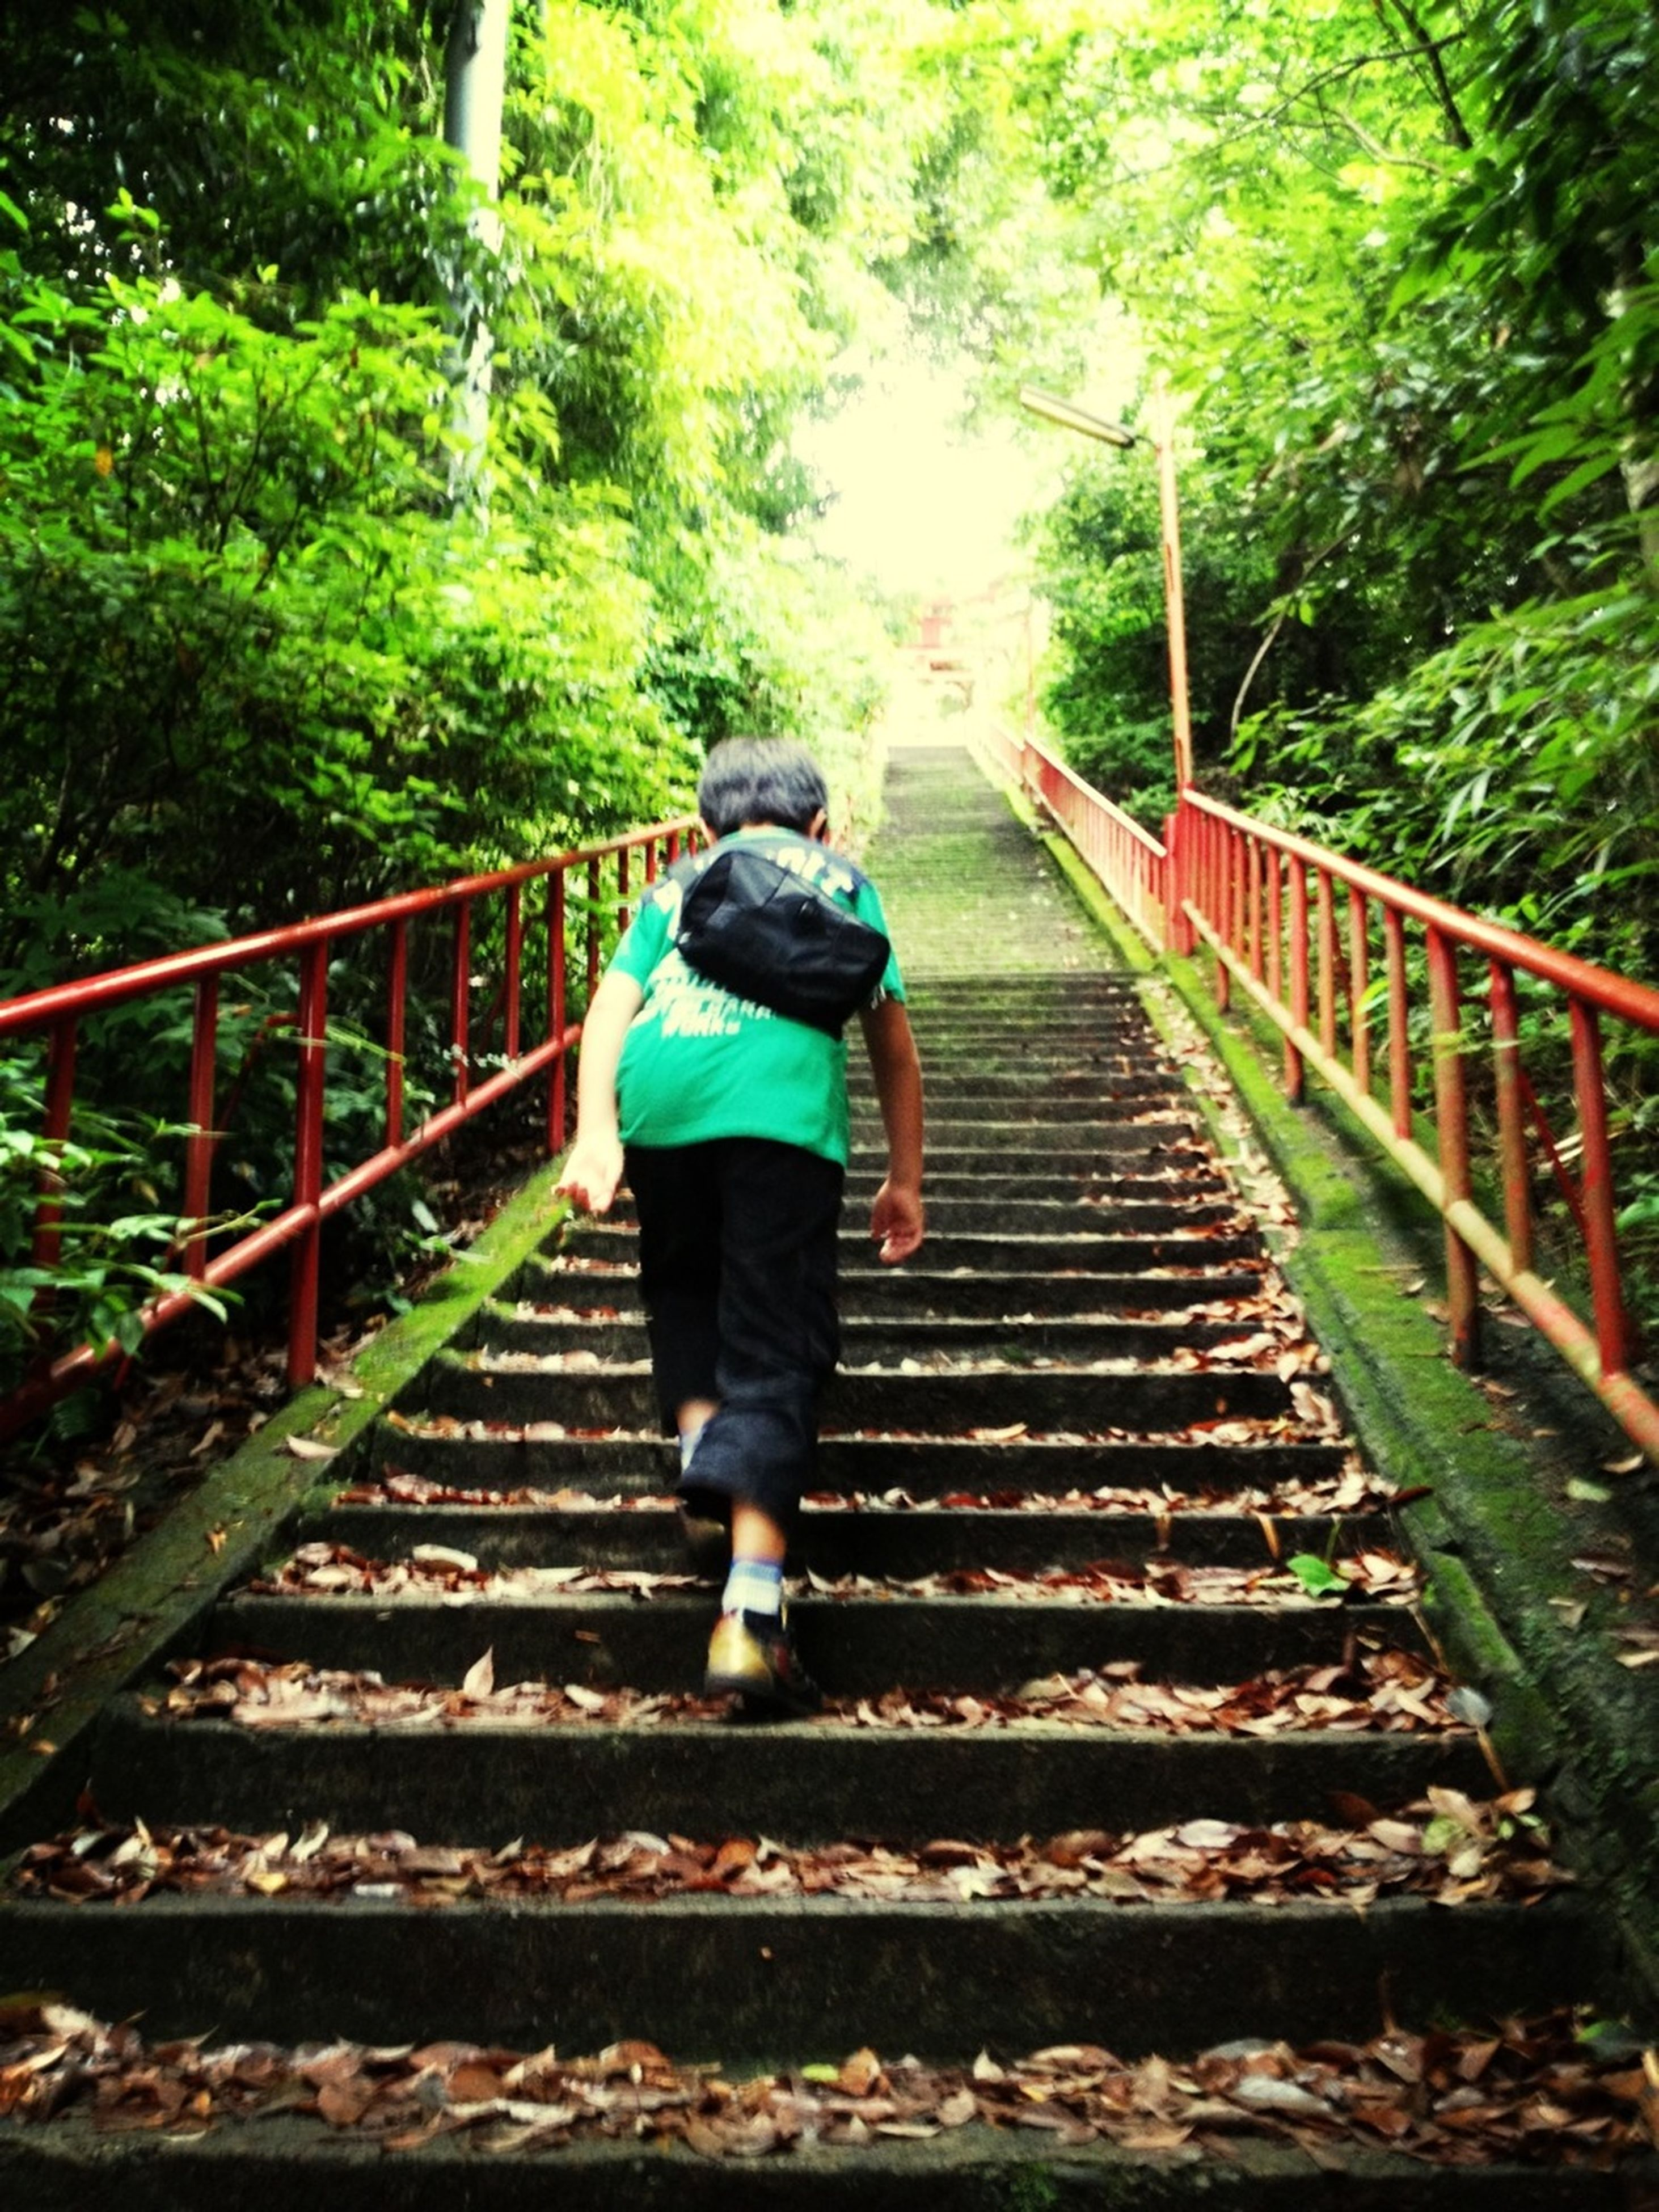 full length, rear view, lifestyles, railing, the way forward, tree, leisure activity, walking, casual clothing, footbridge, connection, forest, railroad track, bridge - man made structure, standing, diminishing perspective, men, steps